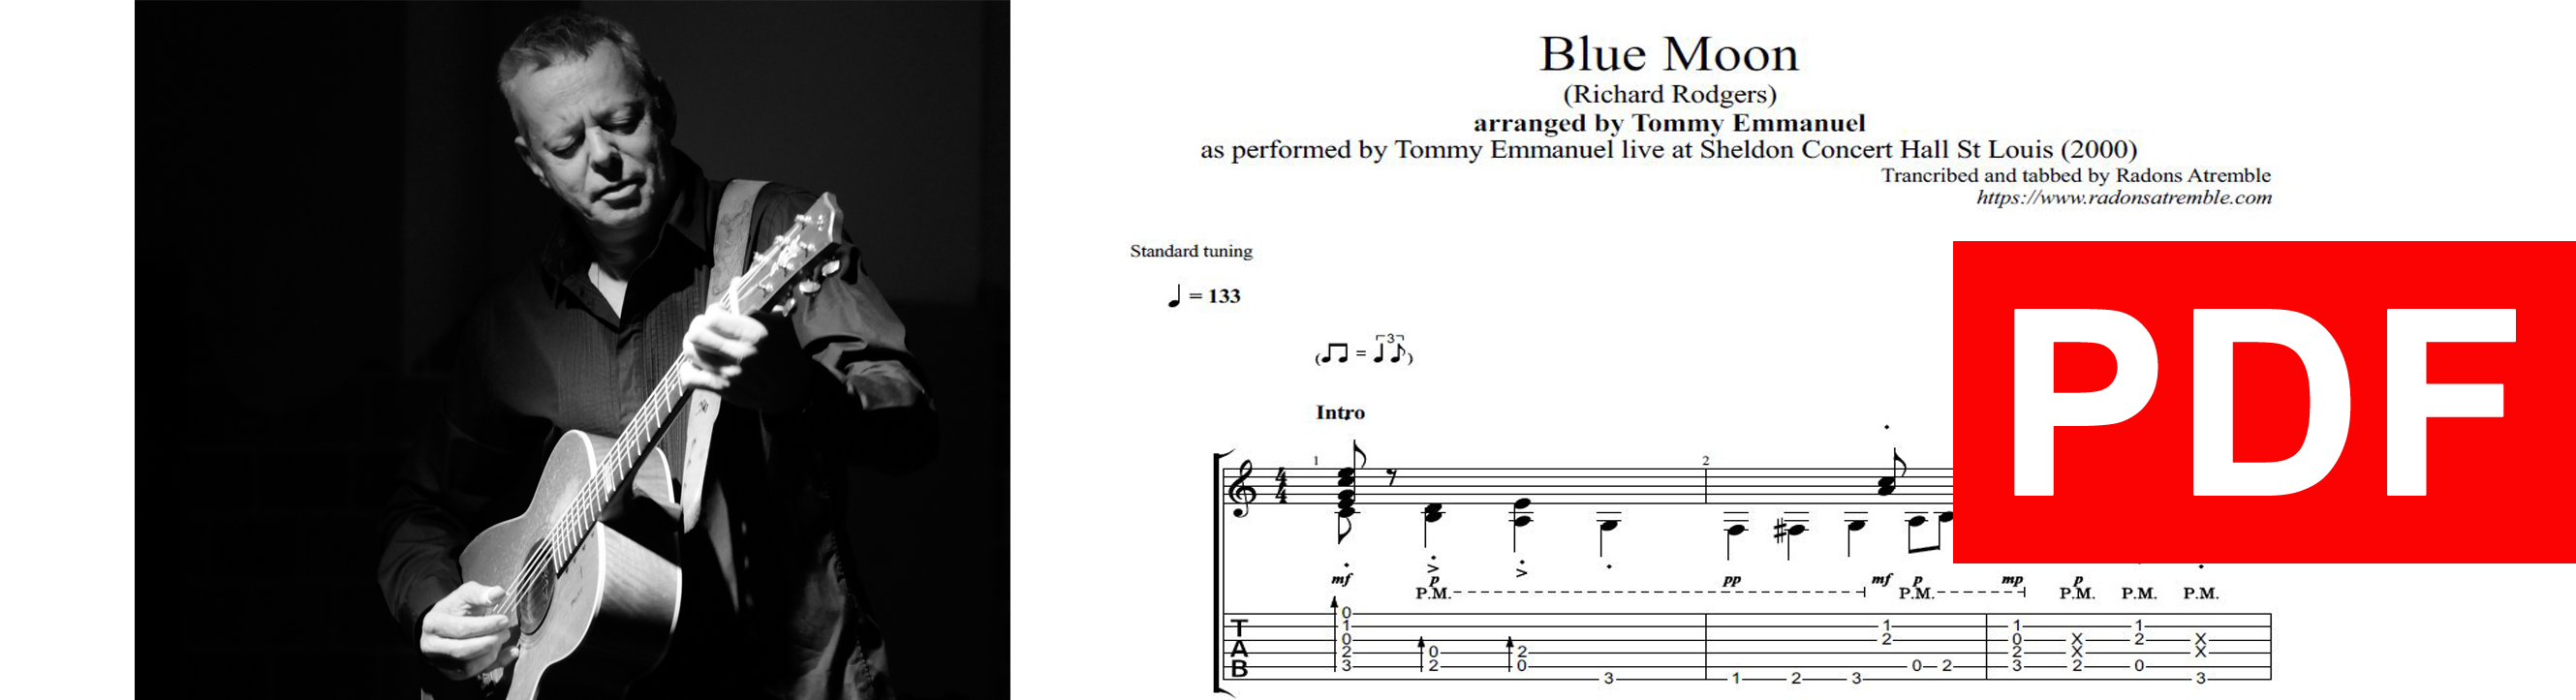 011 Blue Moon - Tommy Emmanuel PDF